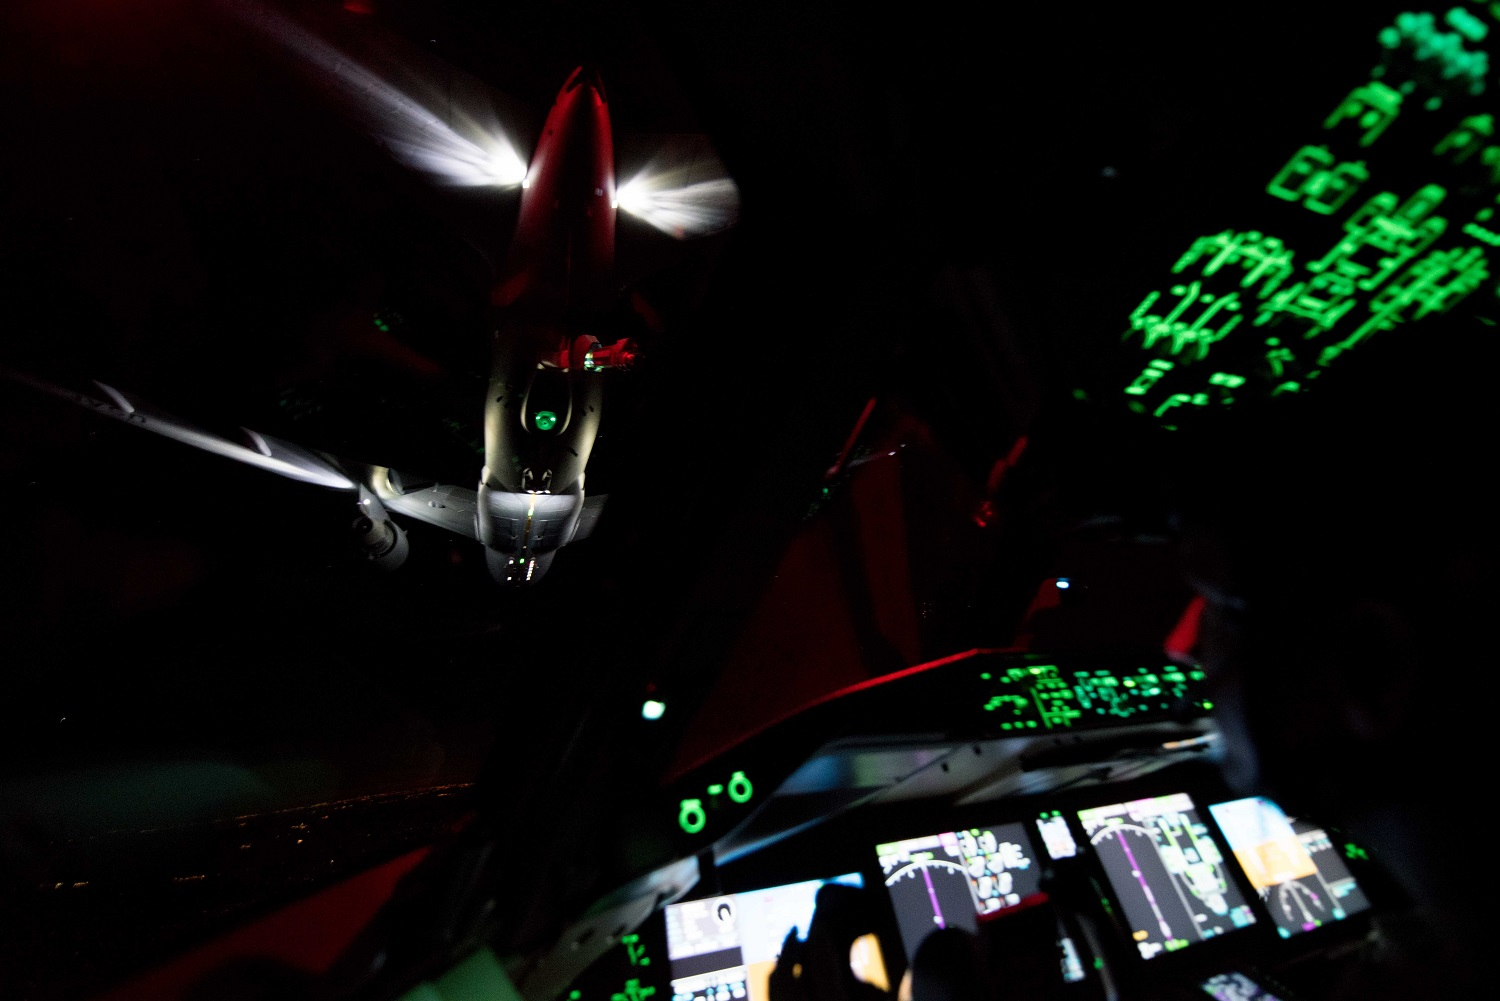 US Air Force Tests KC-46 Pegasus for Night Vision Goggles-Compatibility